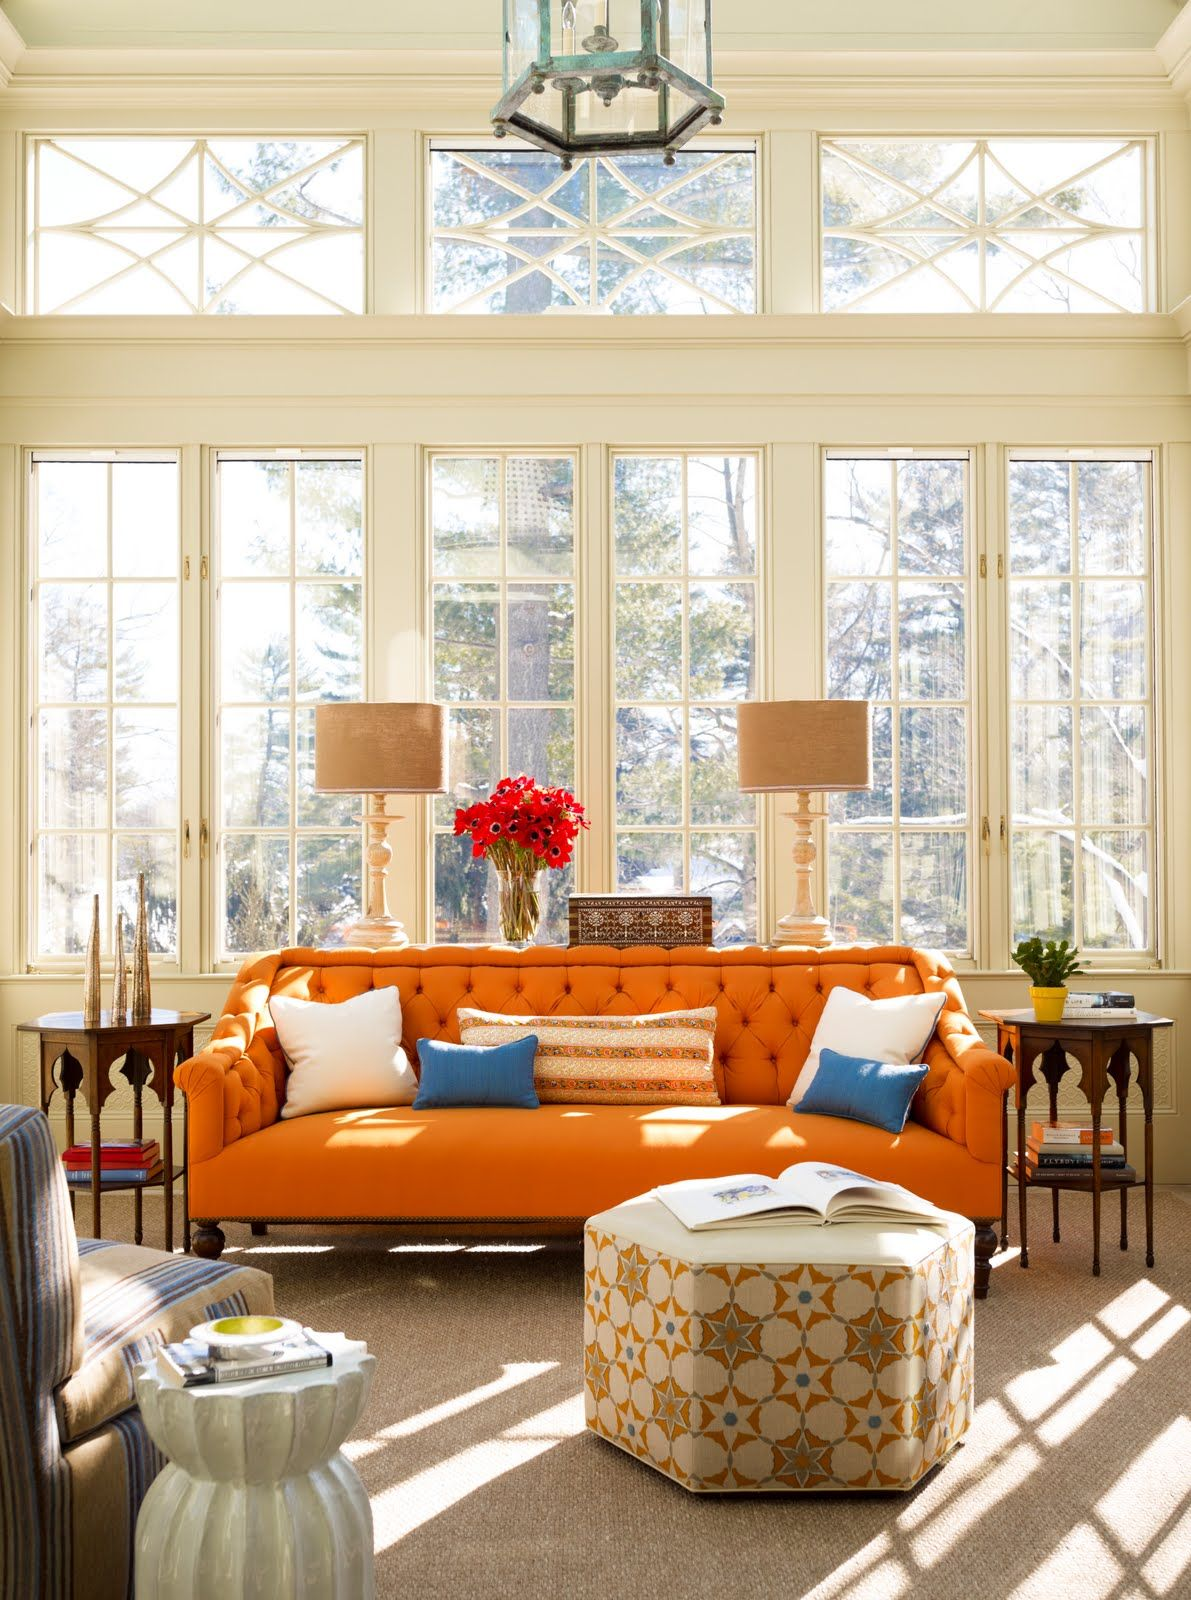 Exceptional LOVELY SPACE. Orange CouchLiving SpacesLiving Room ... Awesome Design